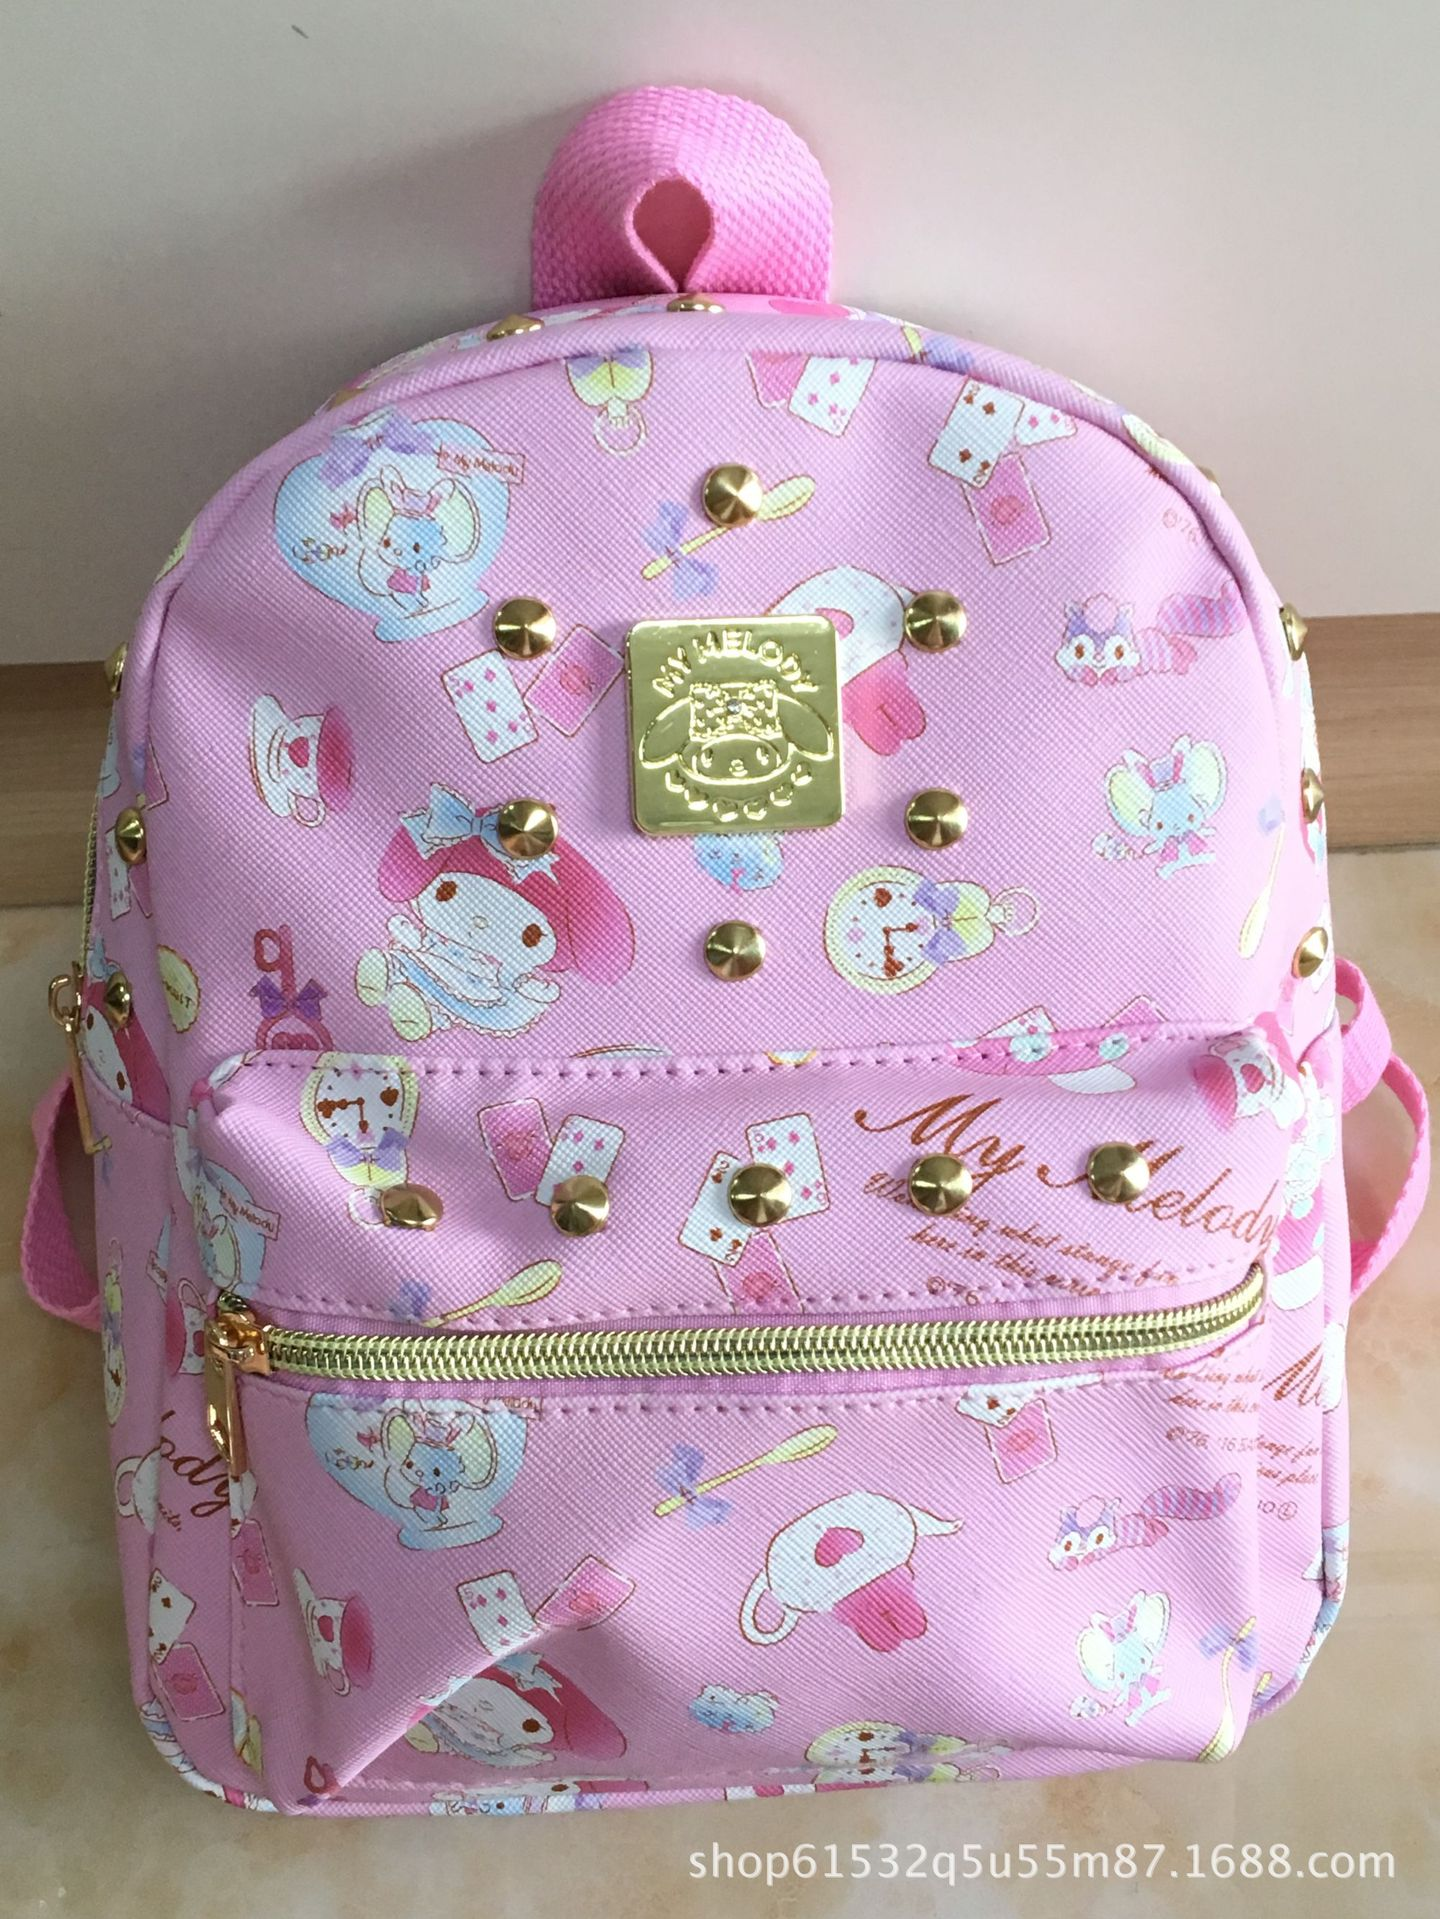 plush animal cartoon duffy friend stellaLou rabbit bunny backpack schoolbag bag